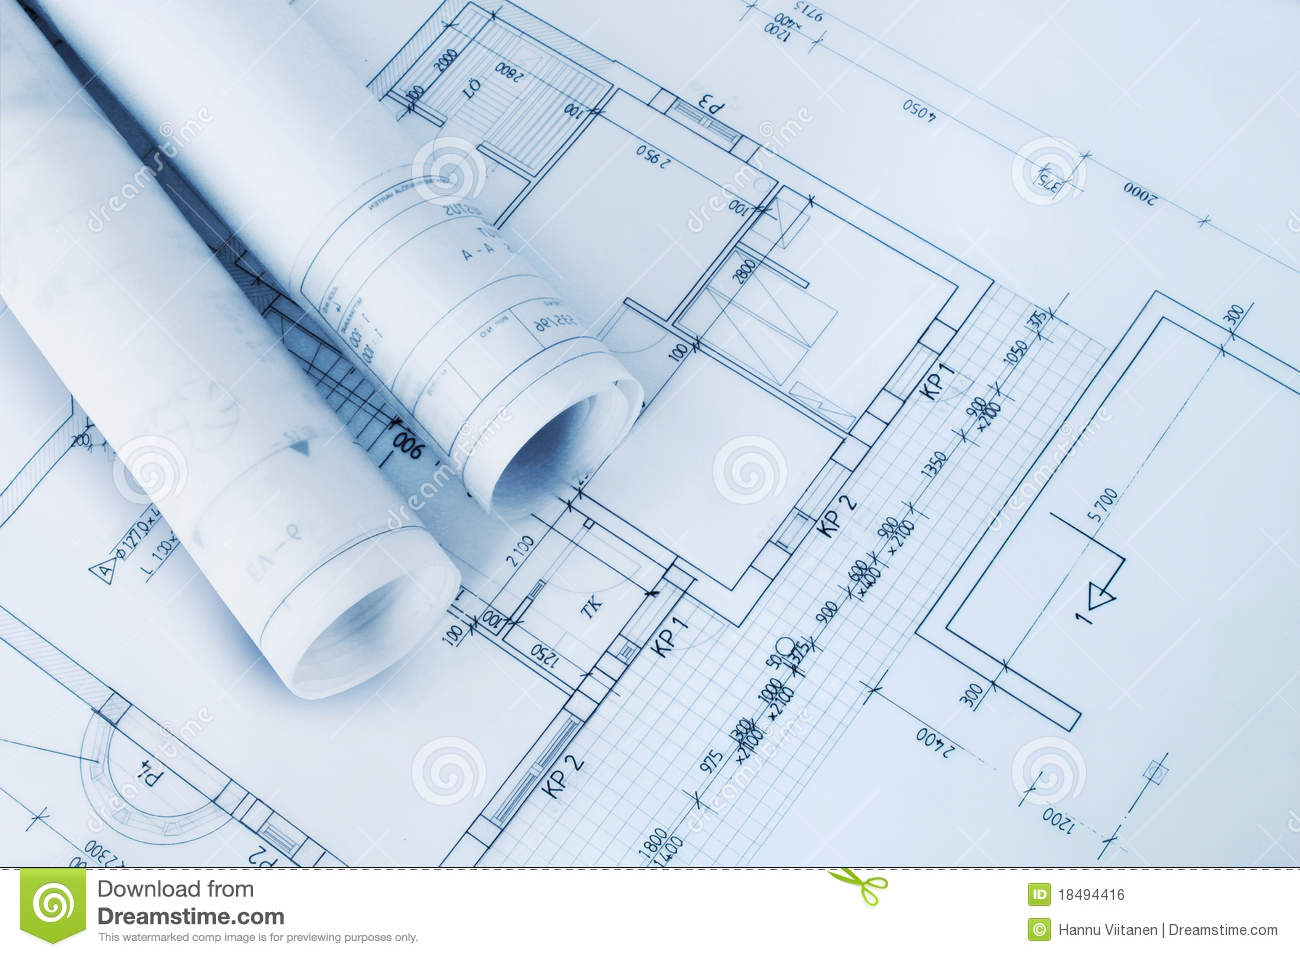 Construction plan blueprints royalty free stock image for How to get building blueprints